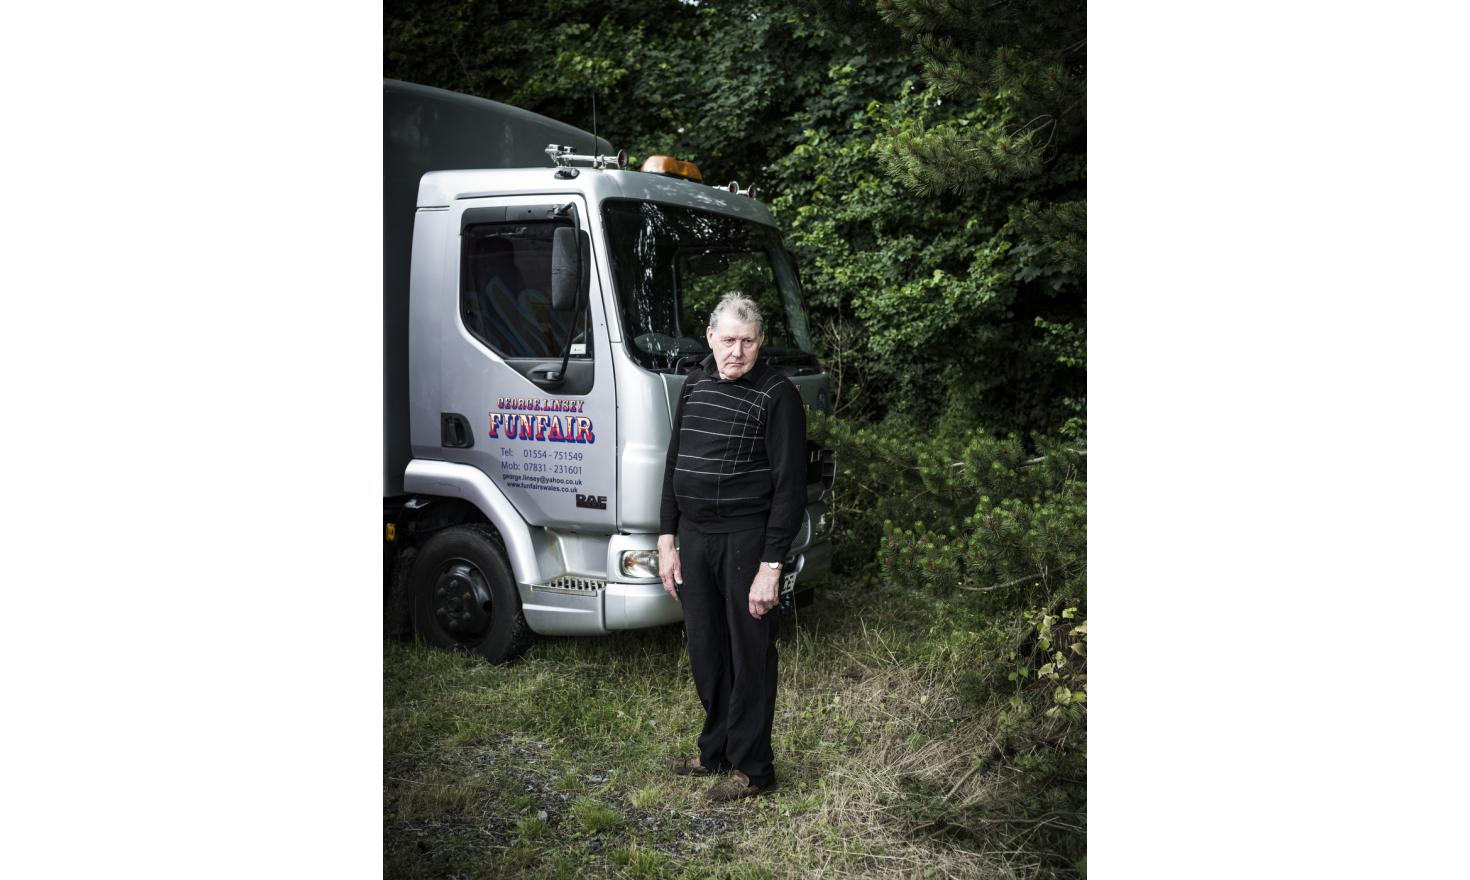 Ron Holmes (75) in Llangennech, Wales. Holmes used to manage a small touring fairground, but is now retired. His son has taken over the company. He voted out of the EU.